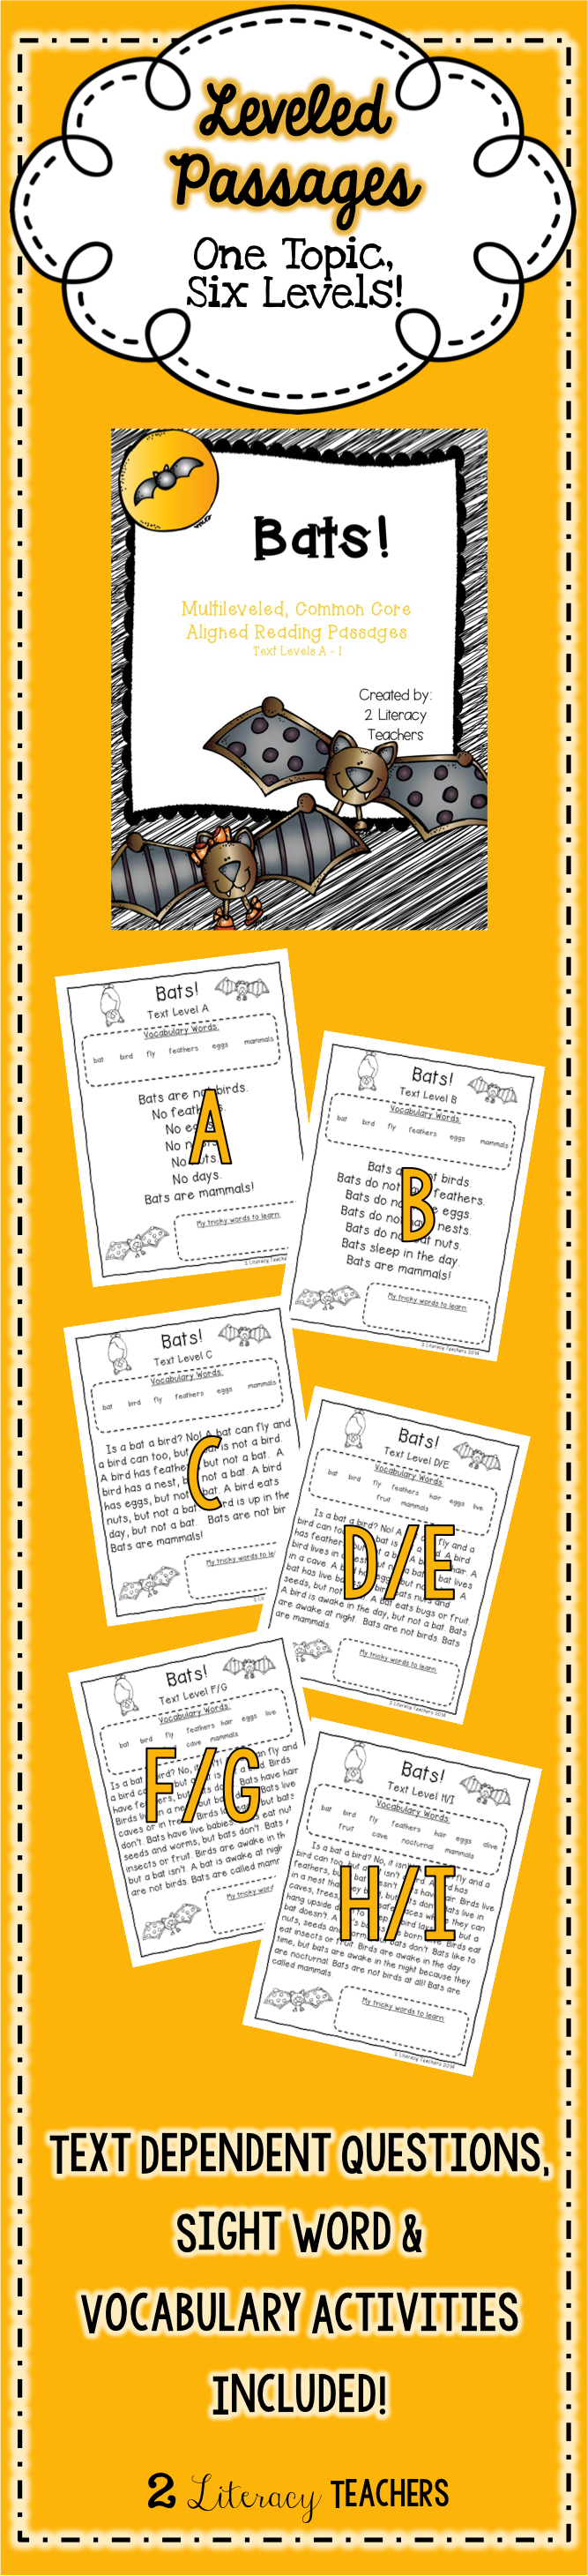 worksheet Leveled Reading Passages bats ccss aligned leveled reading passages and activities included in this set are 6 on the same topic at different text levels a i allows all students to aligned